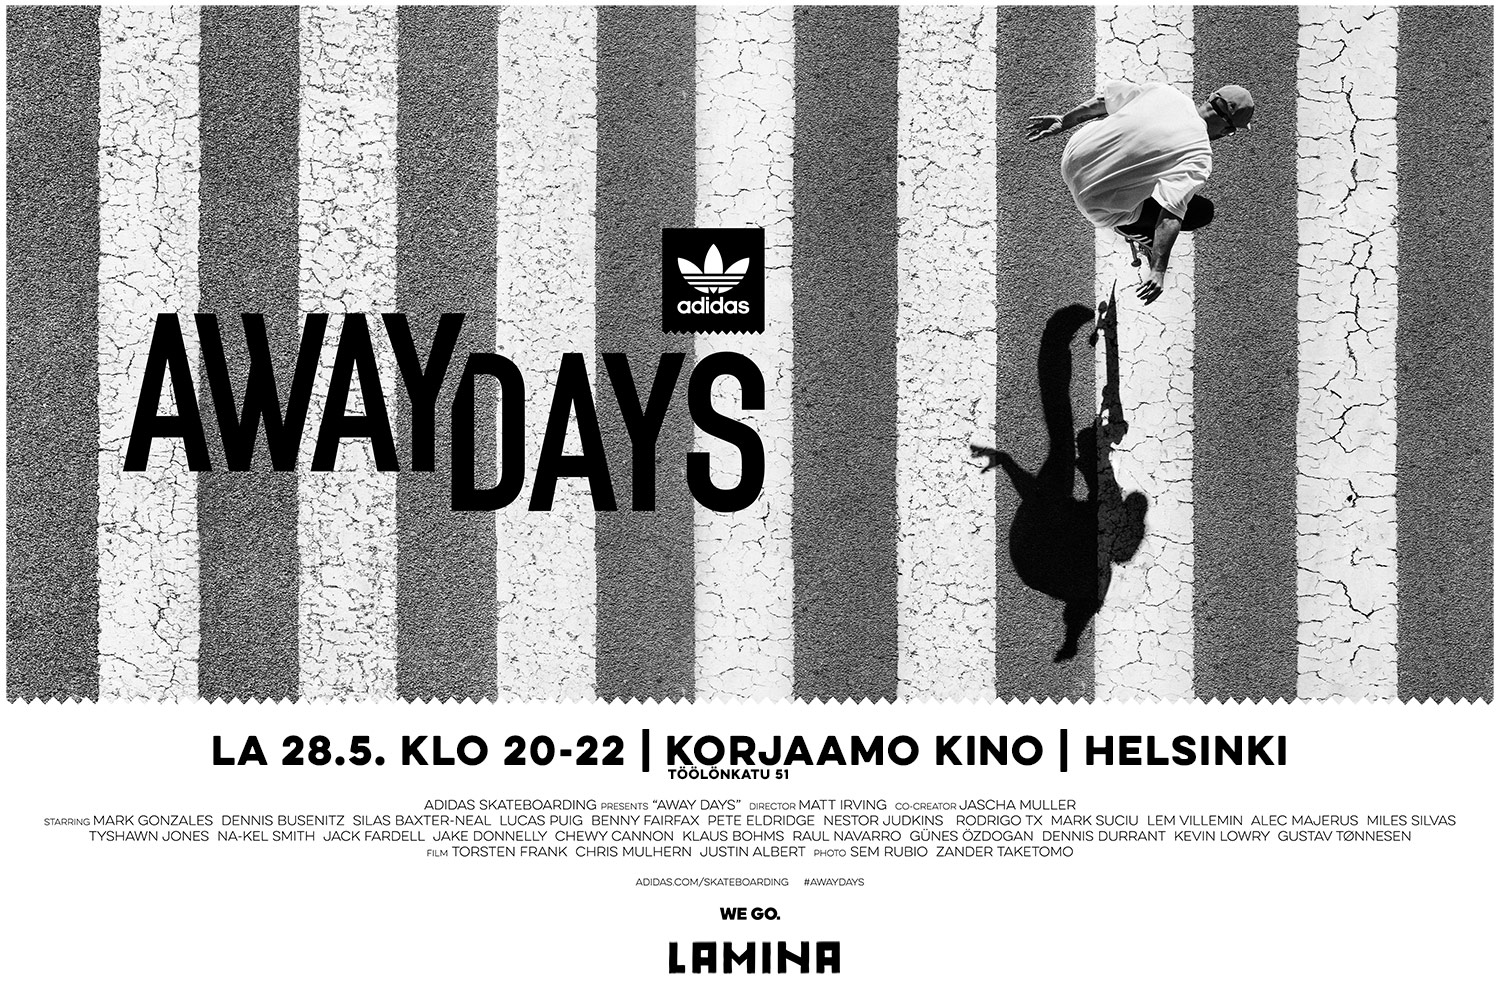 adidas Skateboarding - Away Days - Helsinki